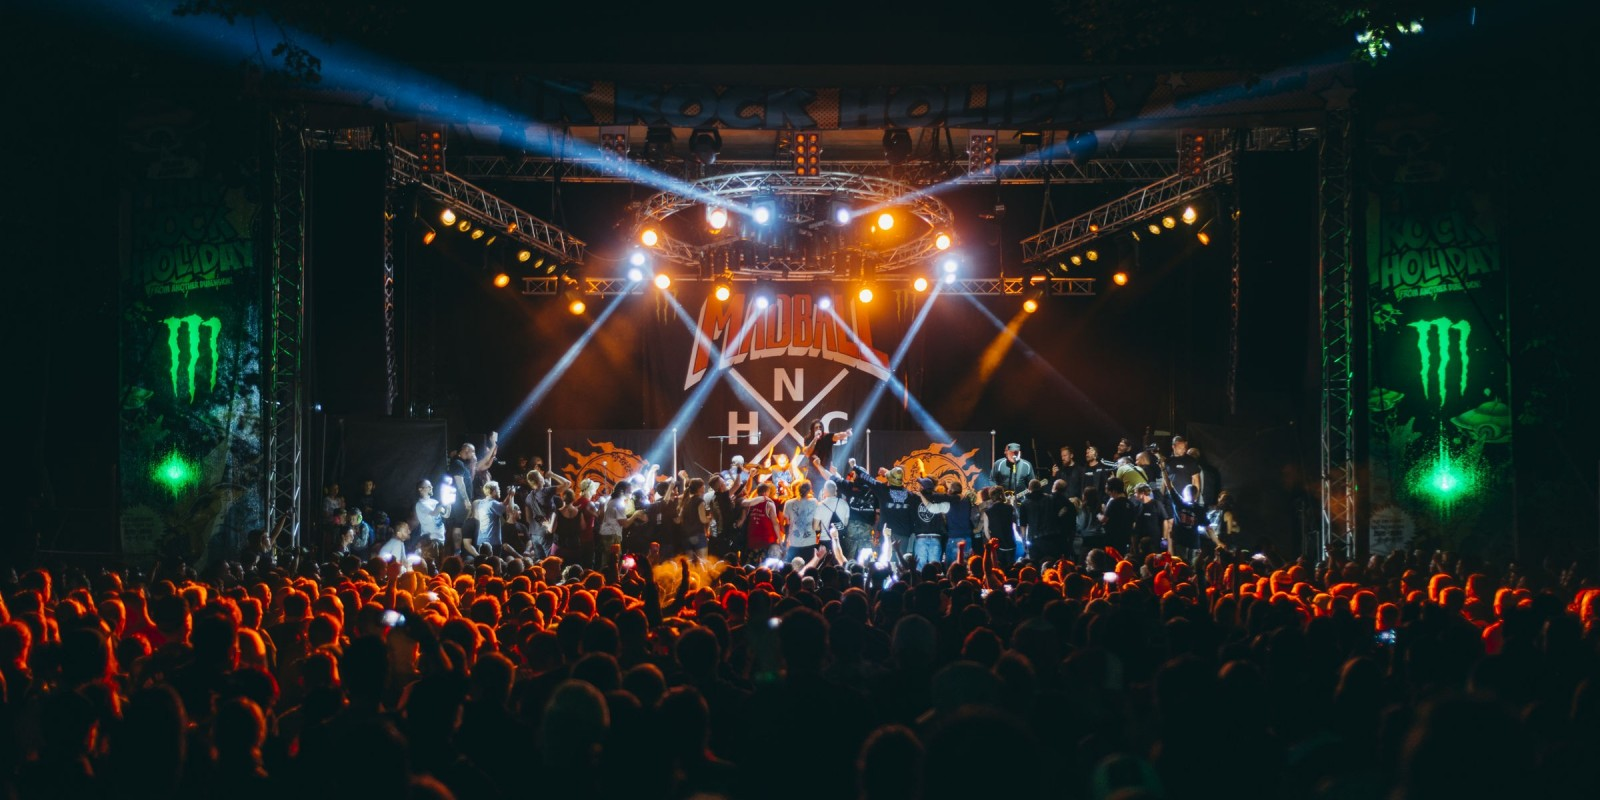 Image of the 2017 Punk Rock Holiday in Slovenia